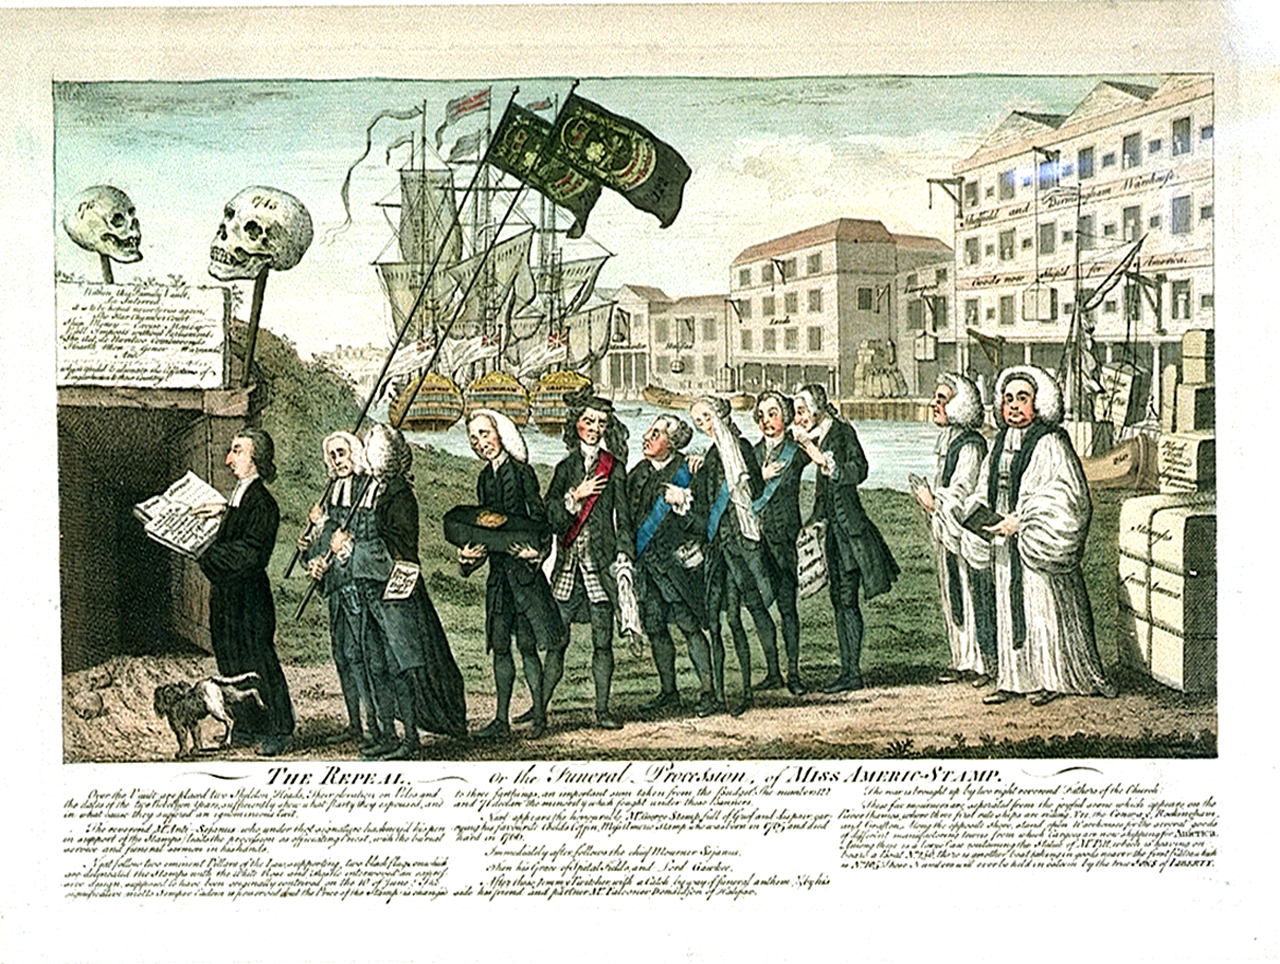 The Repeal, 1760s political cartoon depicting the repeal of the Stamp Act